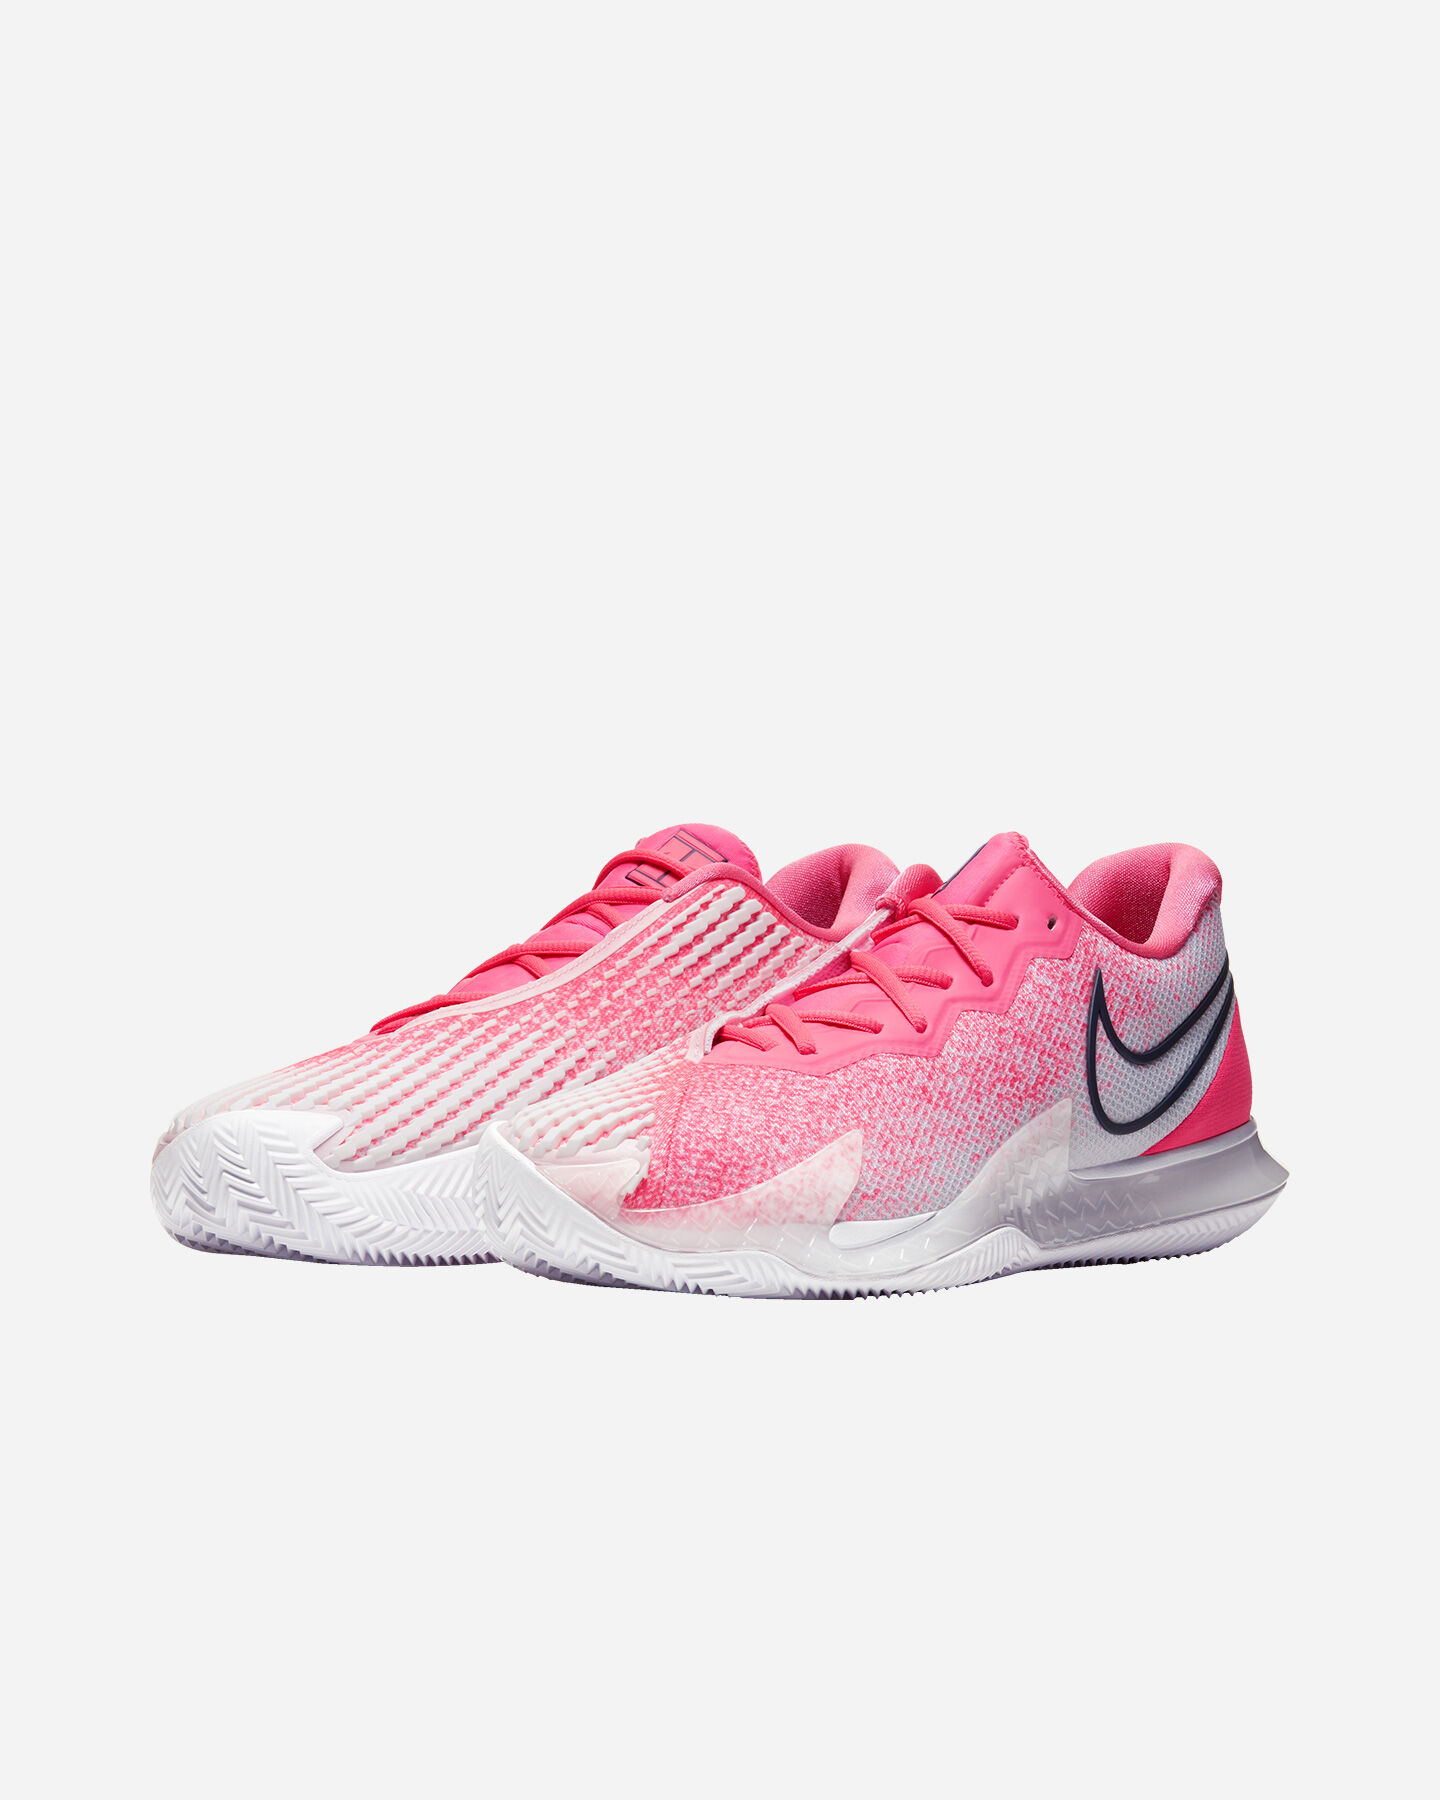 Scarpe tennis NIKE COURT AIR ZOOM VAPOR CAGE 4 CLAY M S5161901 scatto 1